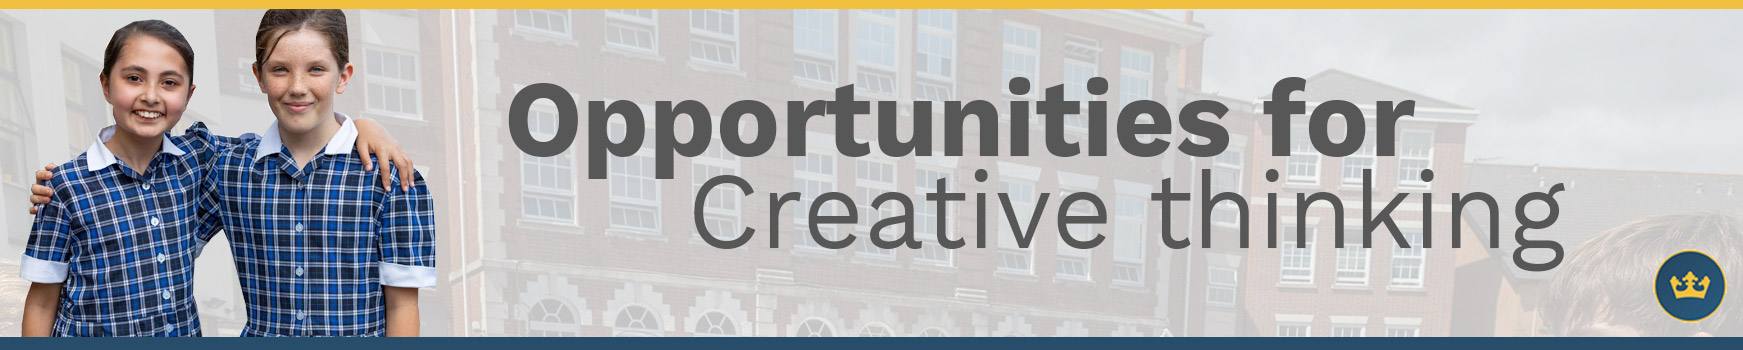 opportunities for creative thinking